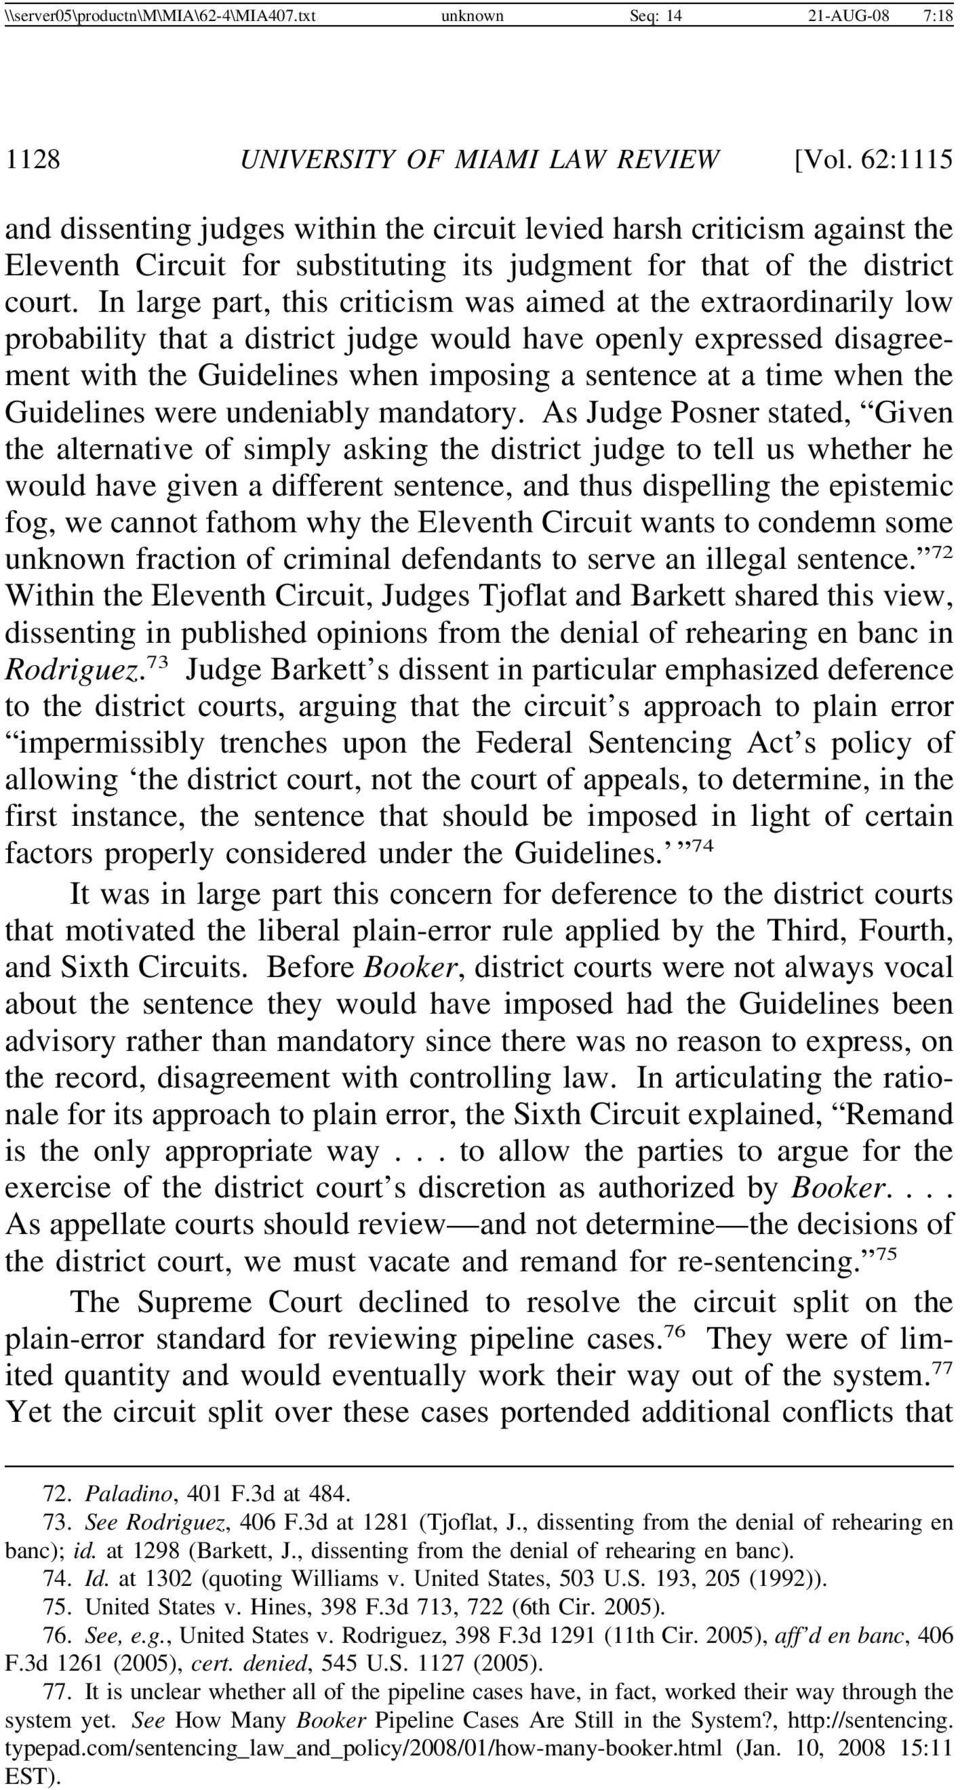 In large part, this criticism was aimed at the extraordinarily low probability that a district judge would have openly expressed disagreement with the Guidelines when imposing a sentence at a time